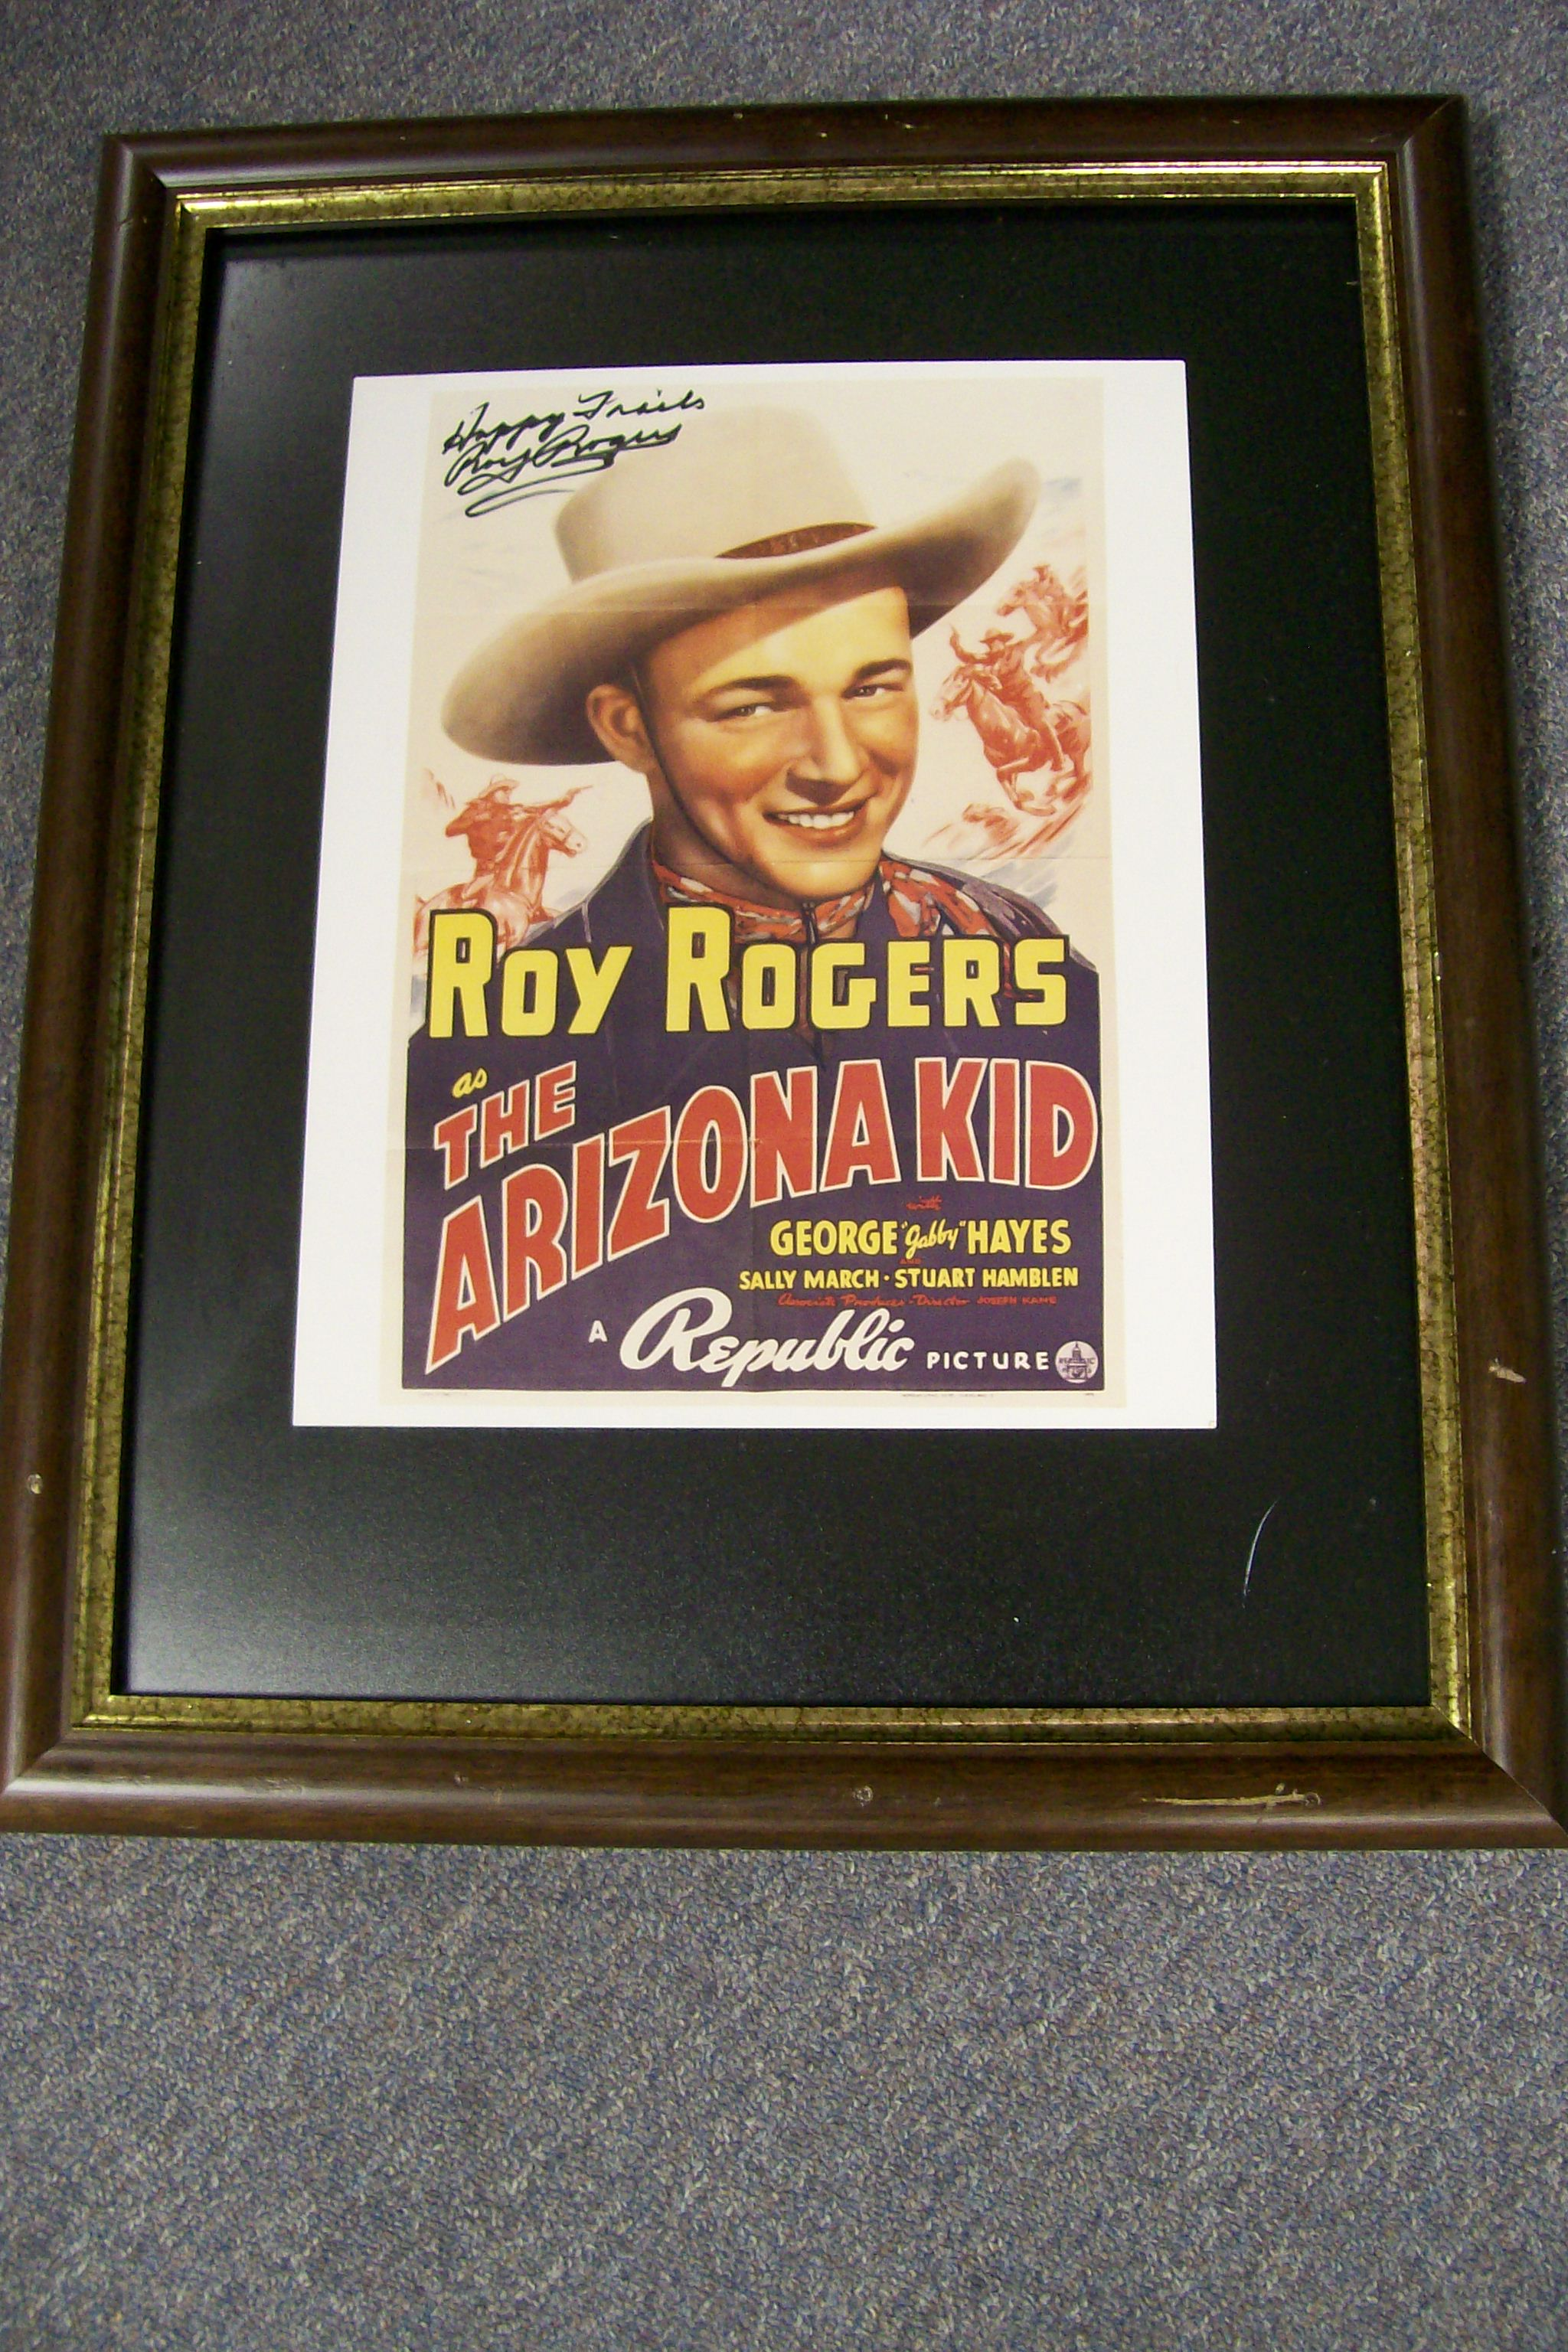 Roy Rogers Autographed Arizona Kid Poster Sold at the Museum